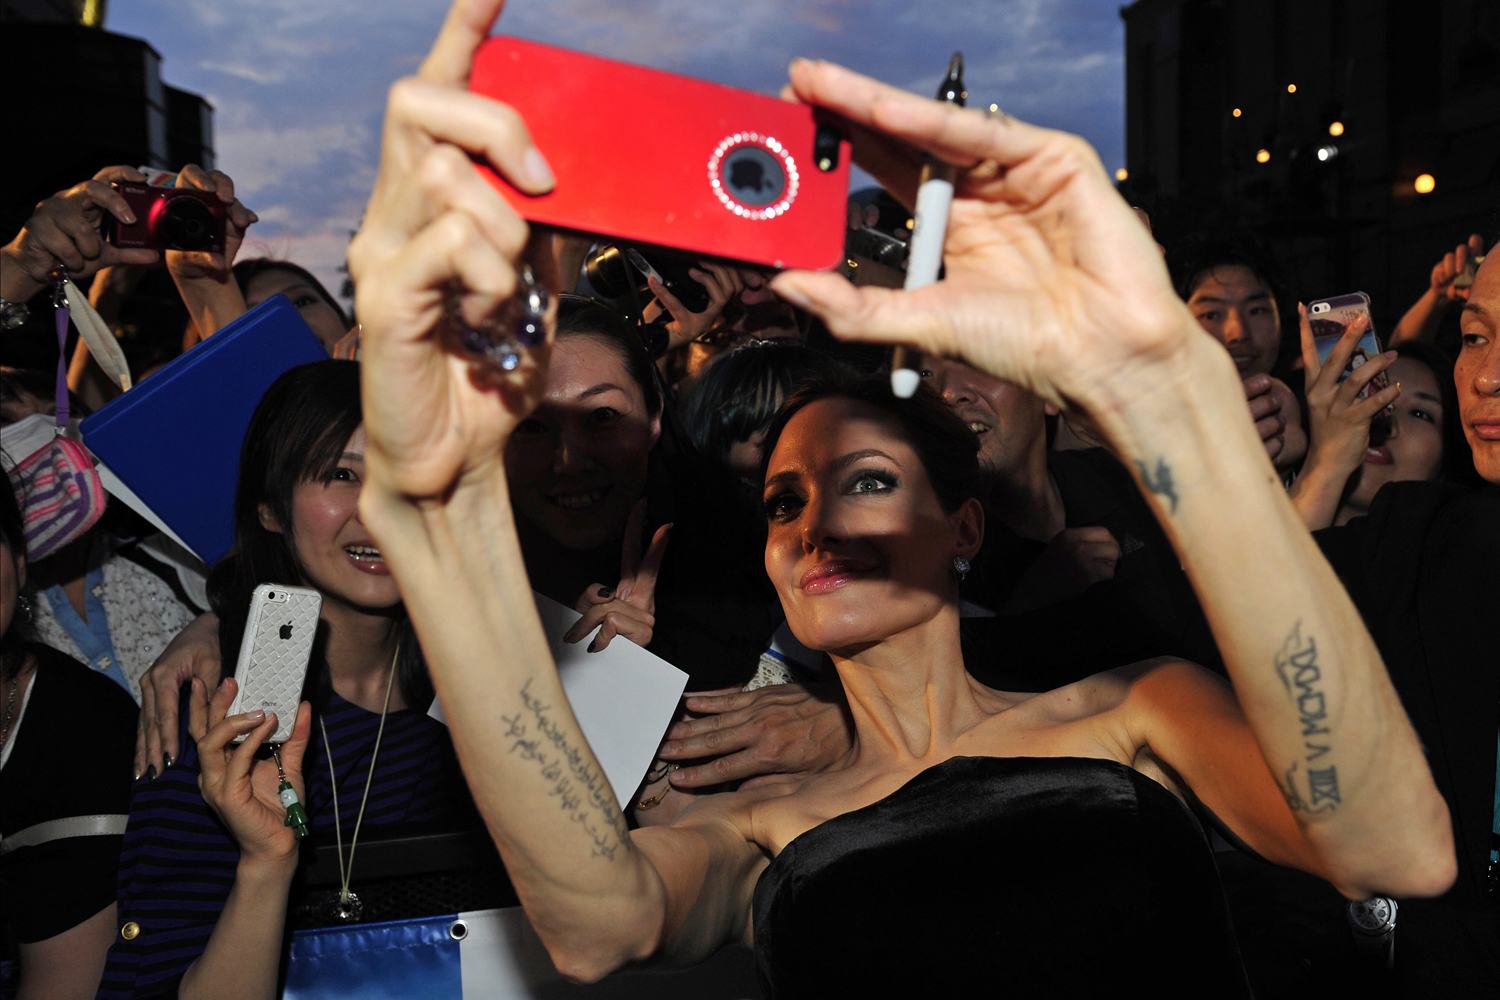 Jun. 23, 2014. US actress and cast member Angelina Jolie (C) takes a selfie with a fan as she attends the premiere of 'Maleficent' in Tokyo, Japan.